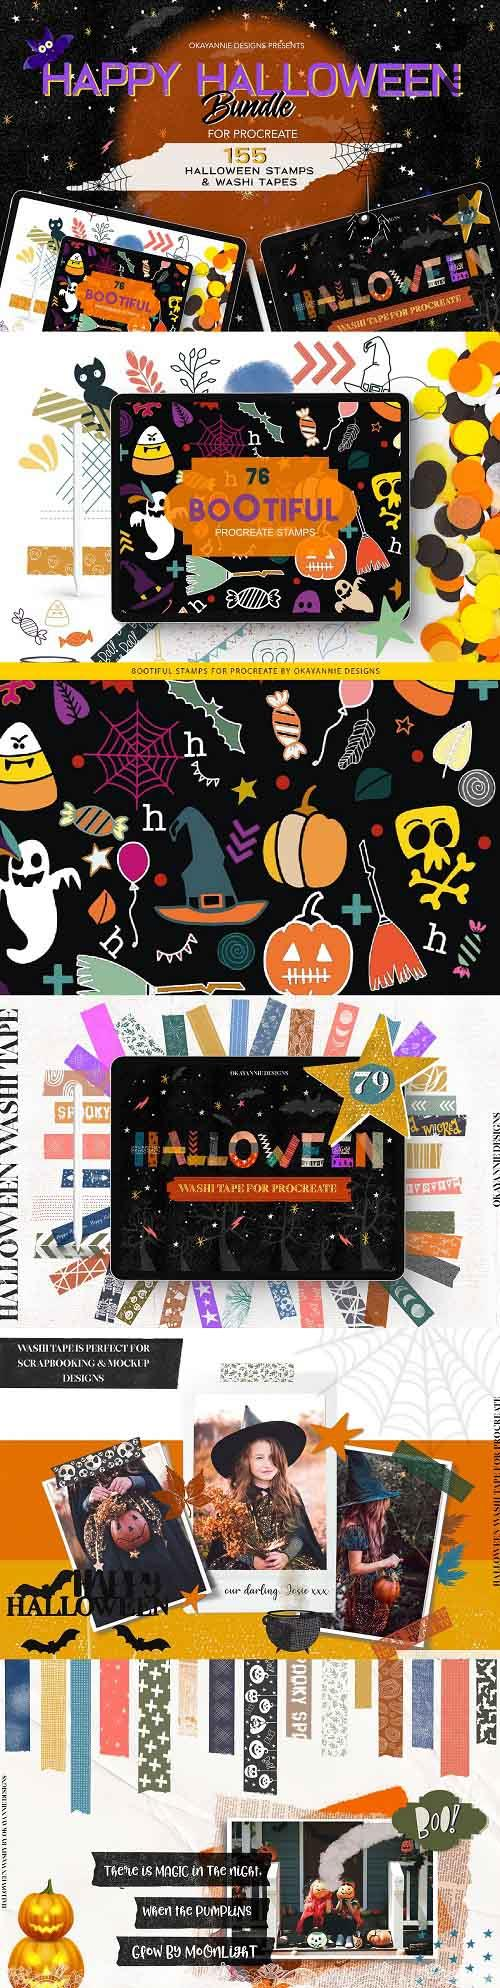 Happy Halloween Procreate Bundle - 5503420